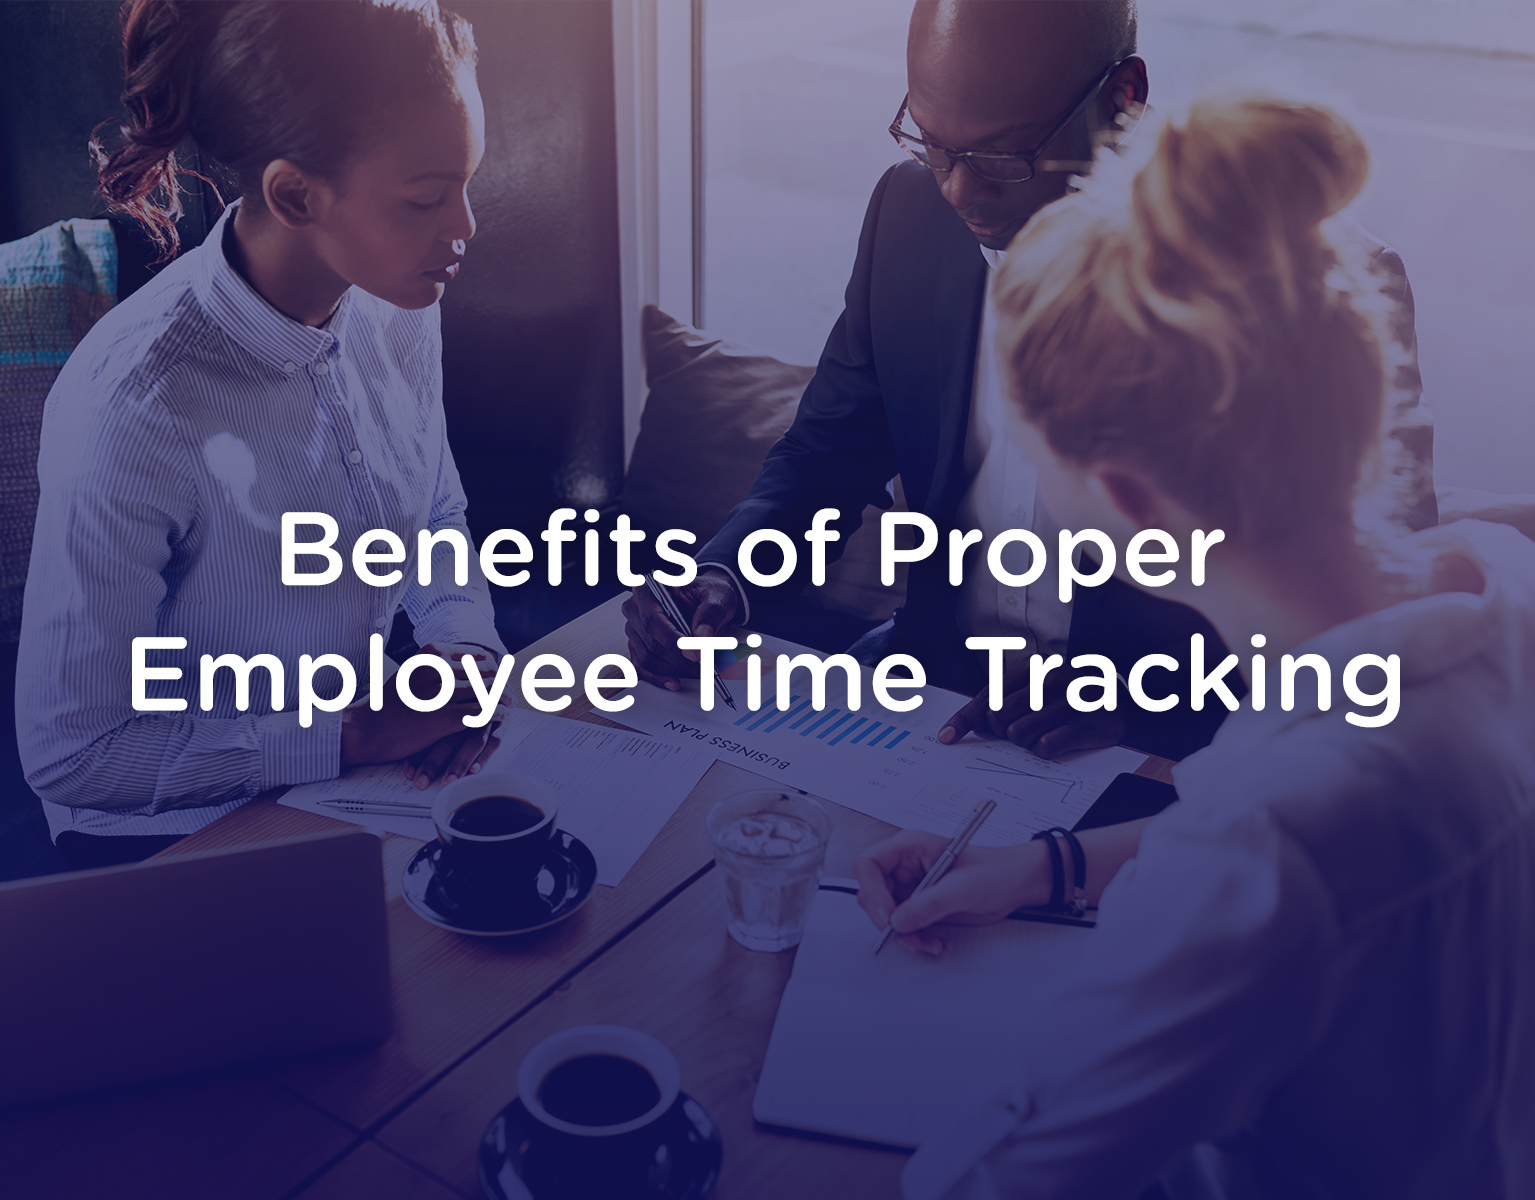 Benefits of Employee Time Tracking